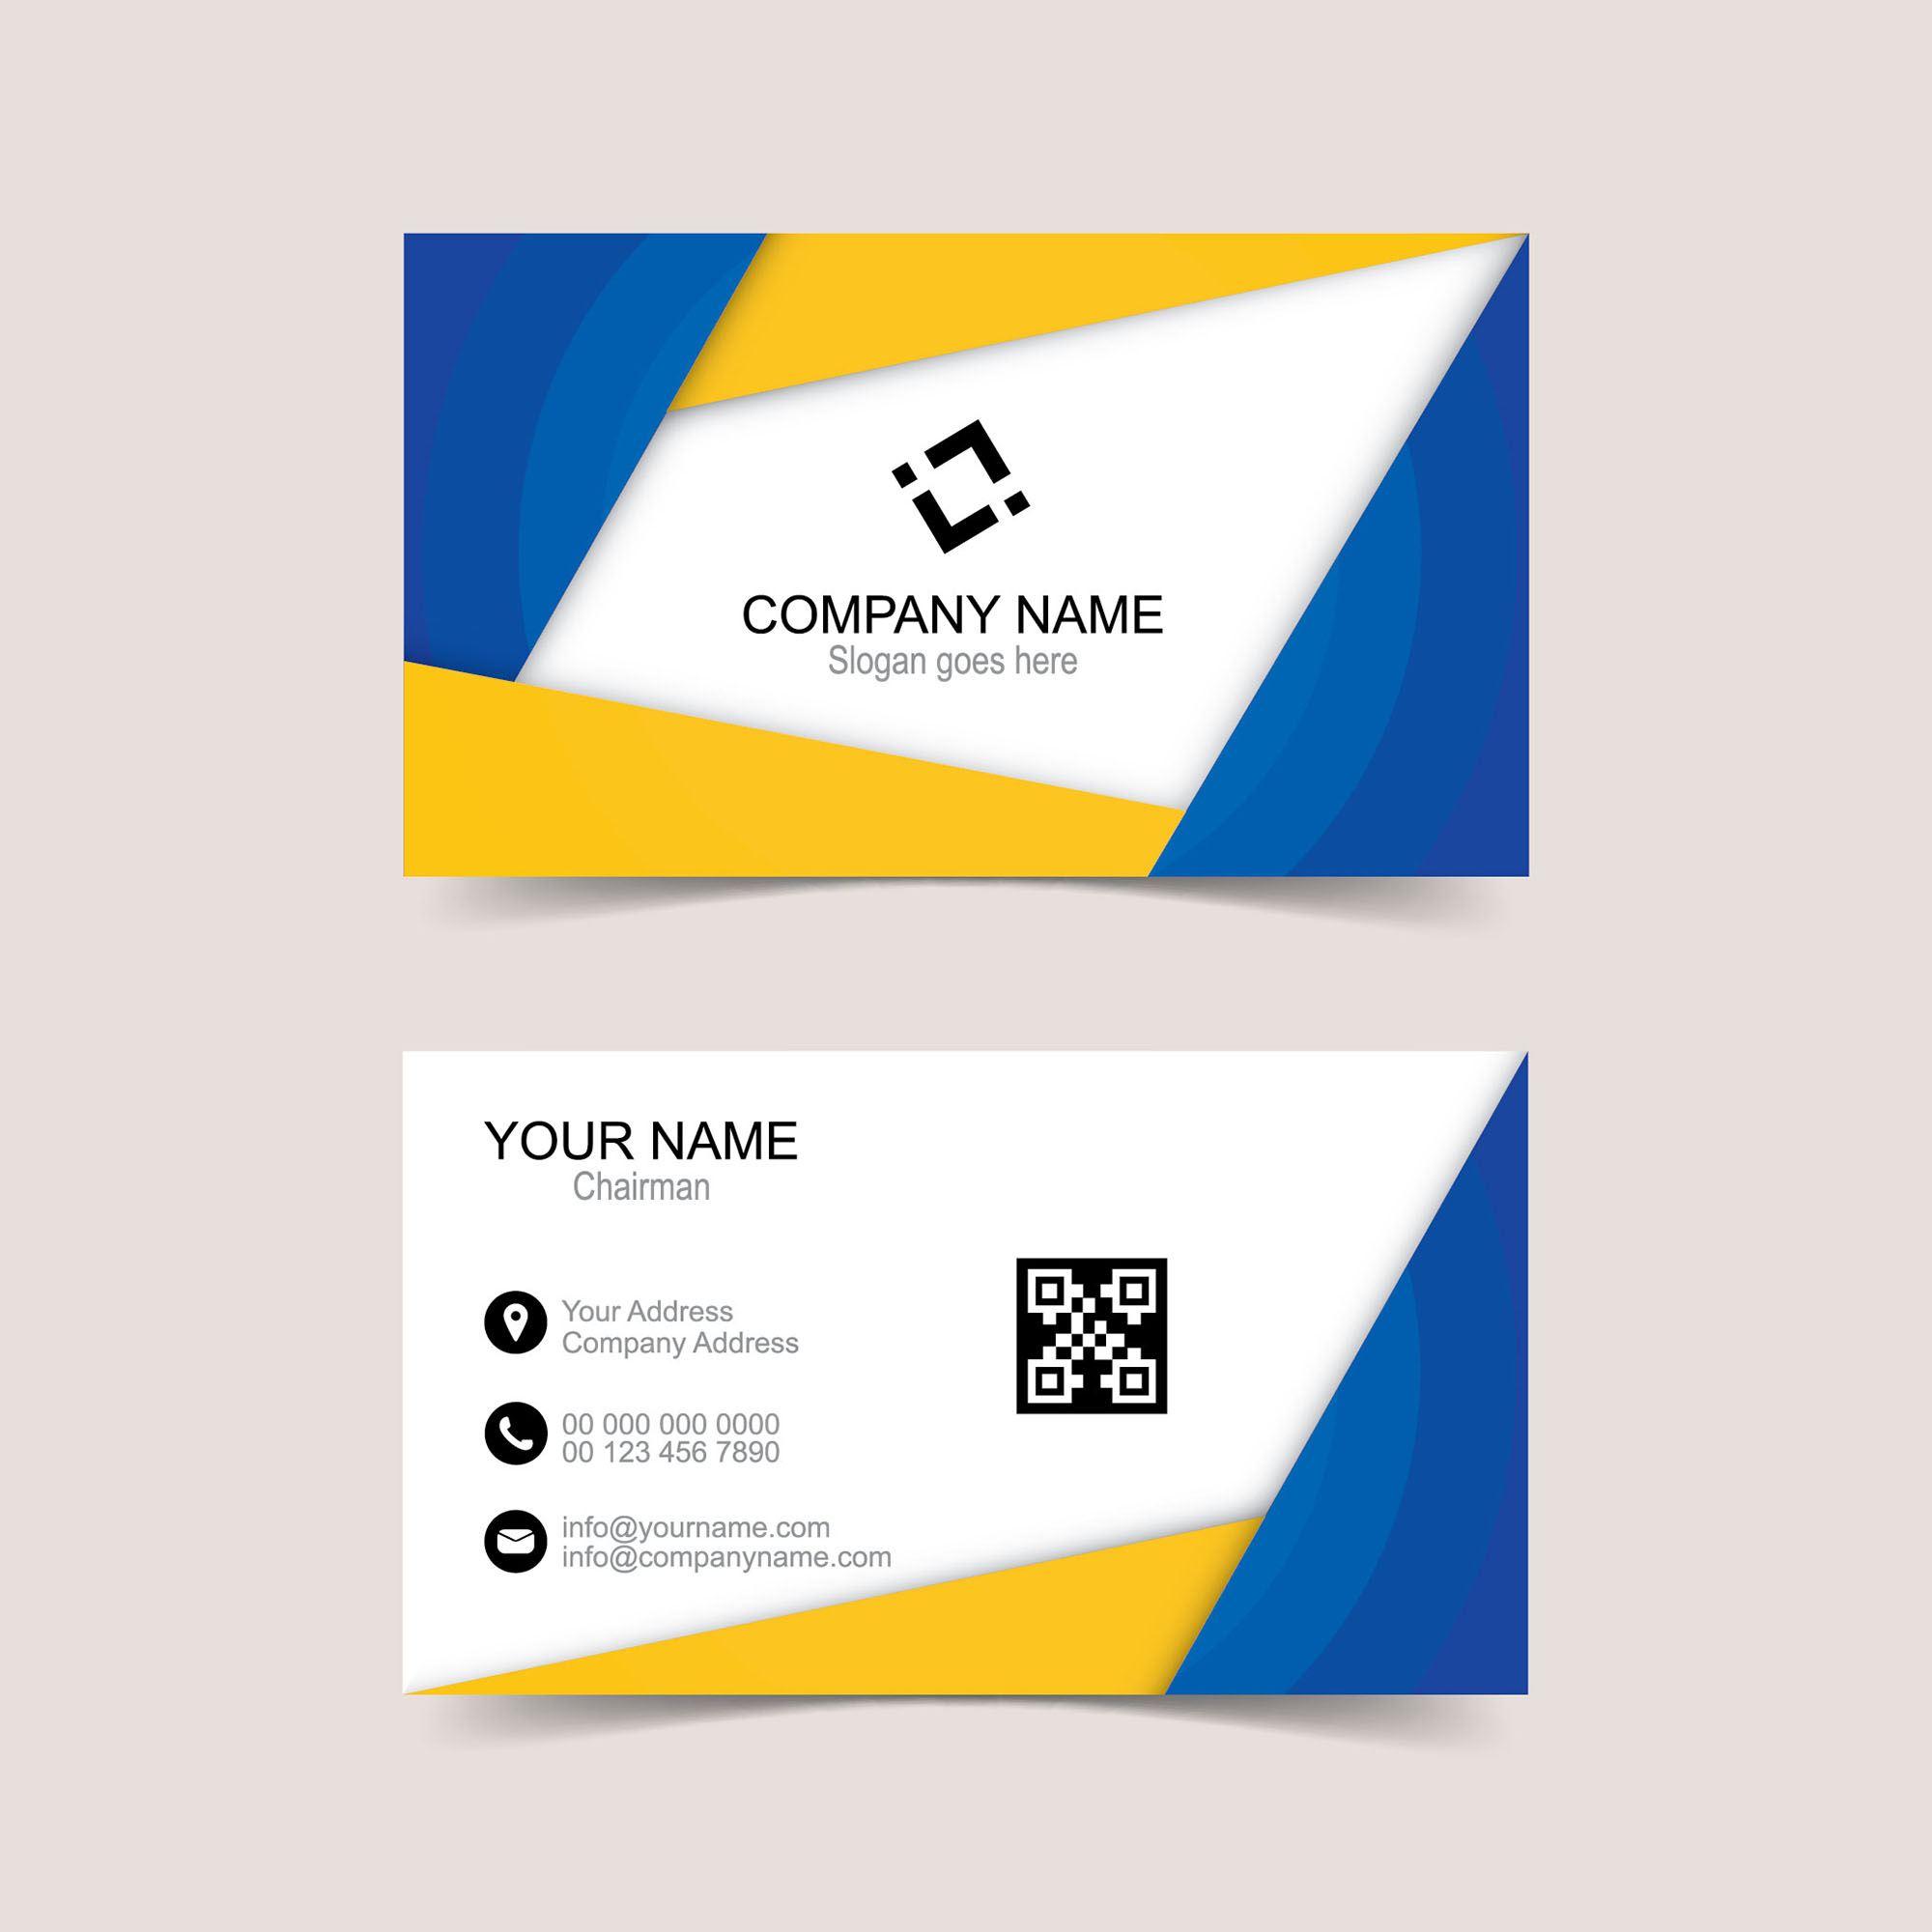 Vector Creative Business Card Template Free Download Wisxicom - Business card templates designs